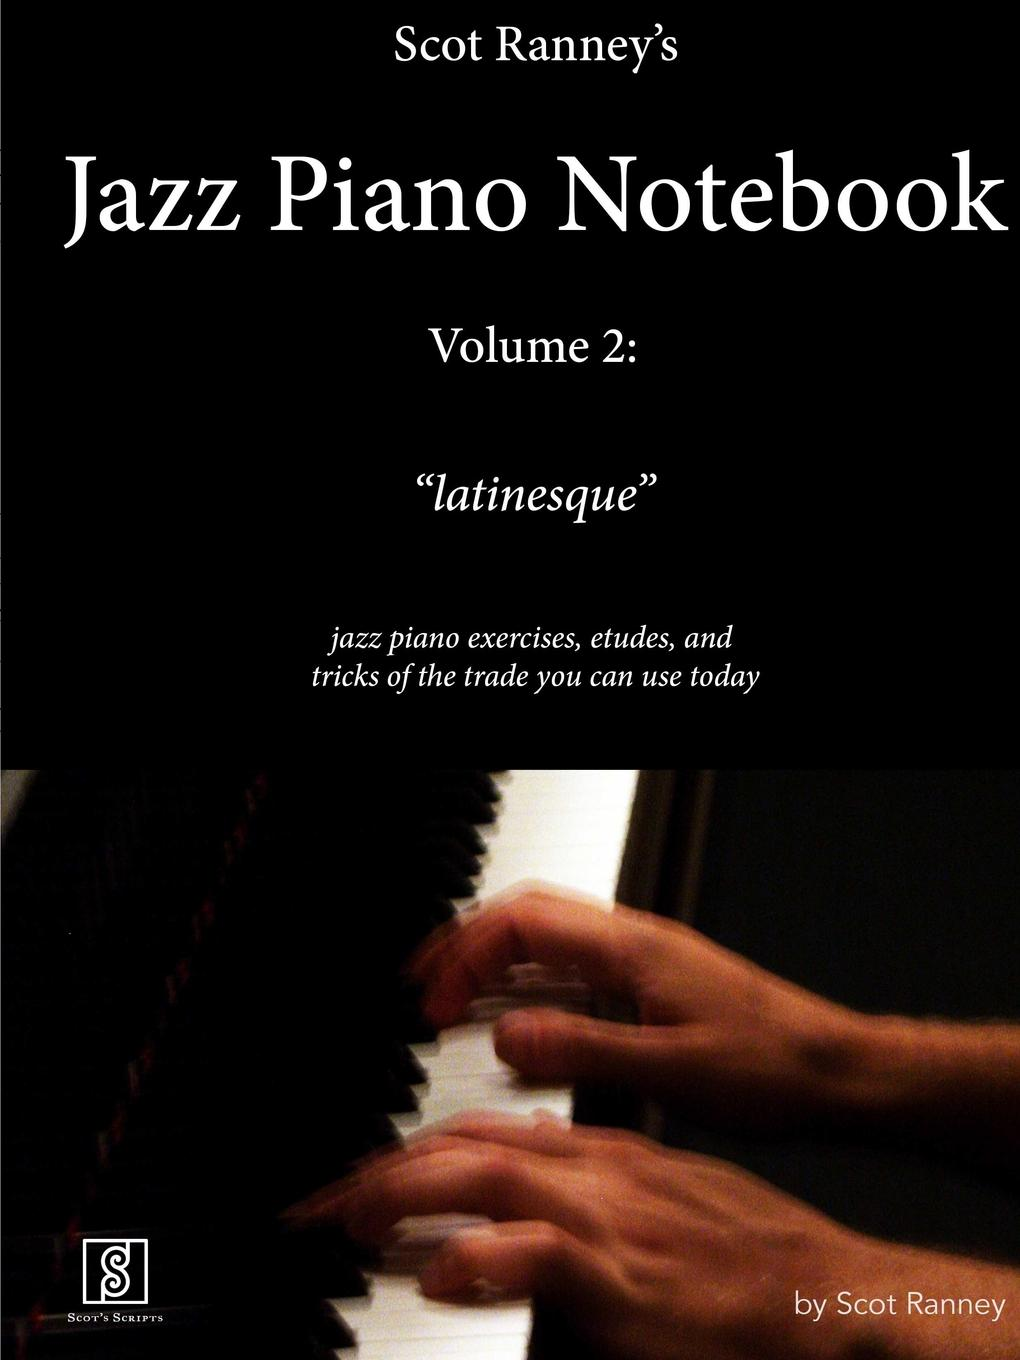 Scot Ranney Scot Ranney.s Jazz Piano Notebook, Volume 2, Latinesque - Jazz Piano Exercises, Etudes, and Tricks of the Trade You Can Use Today night jazz music notebook 8 stave